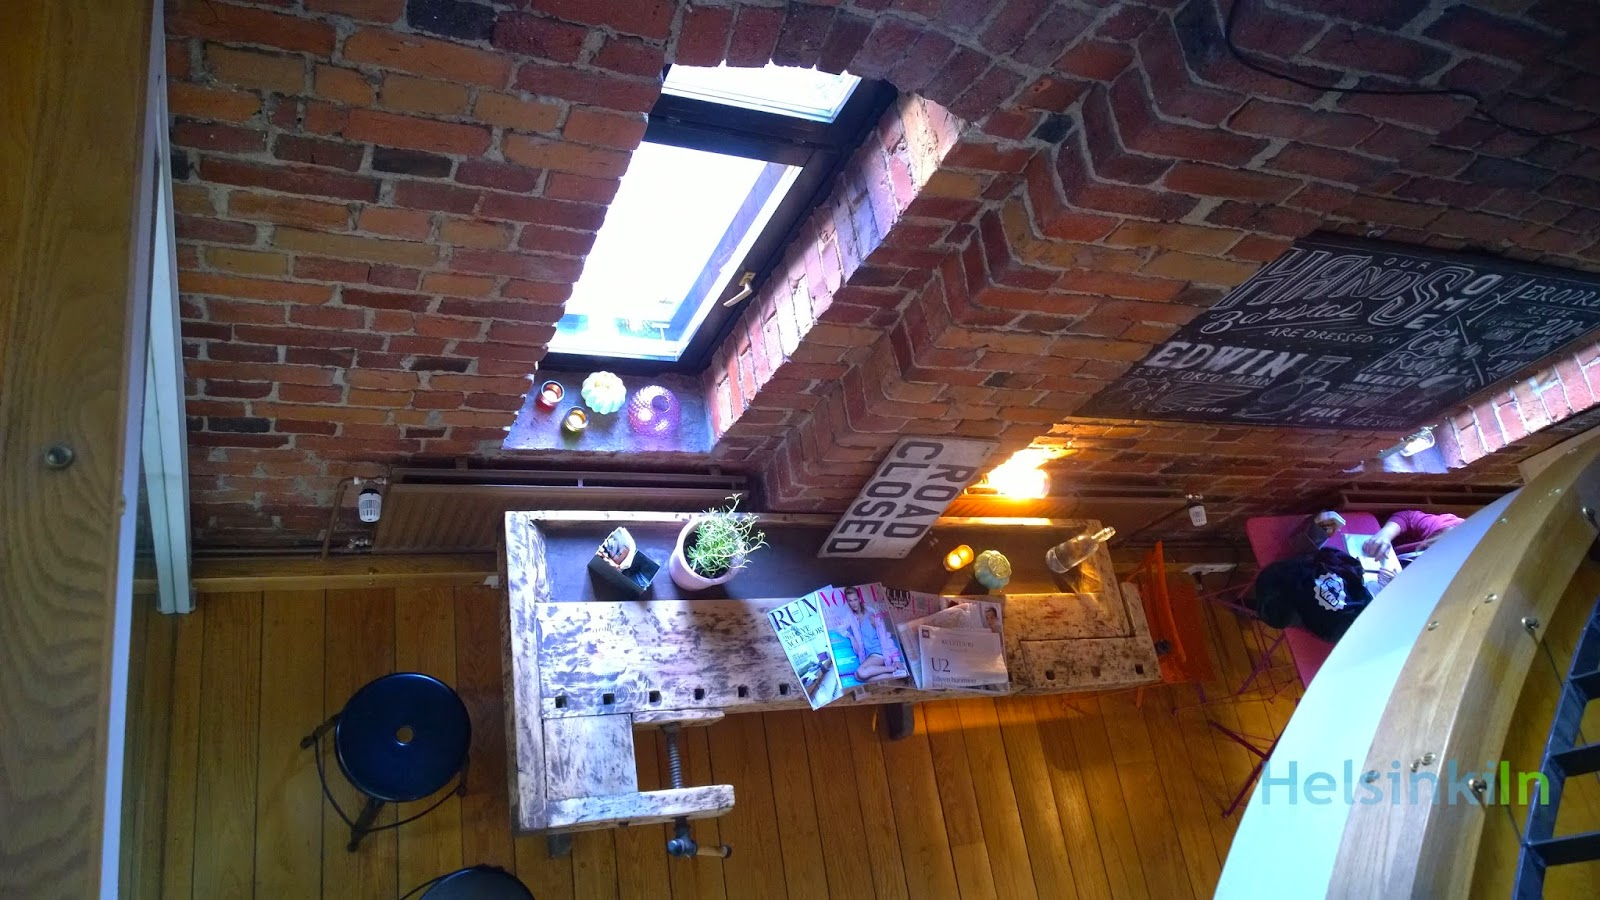 view down from the upper level at Café Kokko